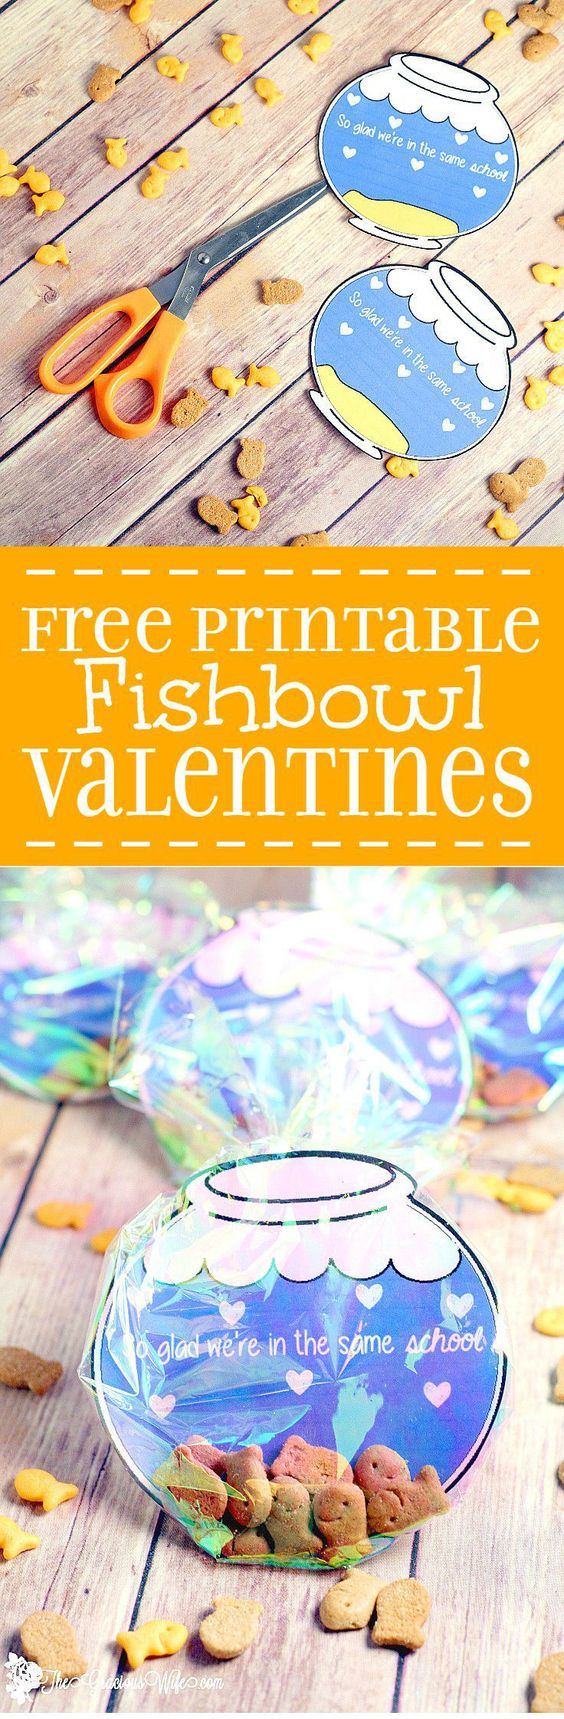 DIY Fishbowl Valentine FREE Printables via The Gracious Wife - Cute homemade Valentine's Day idea for kids to make for school. Plus FREE printables to make your own at home! So cute!